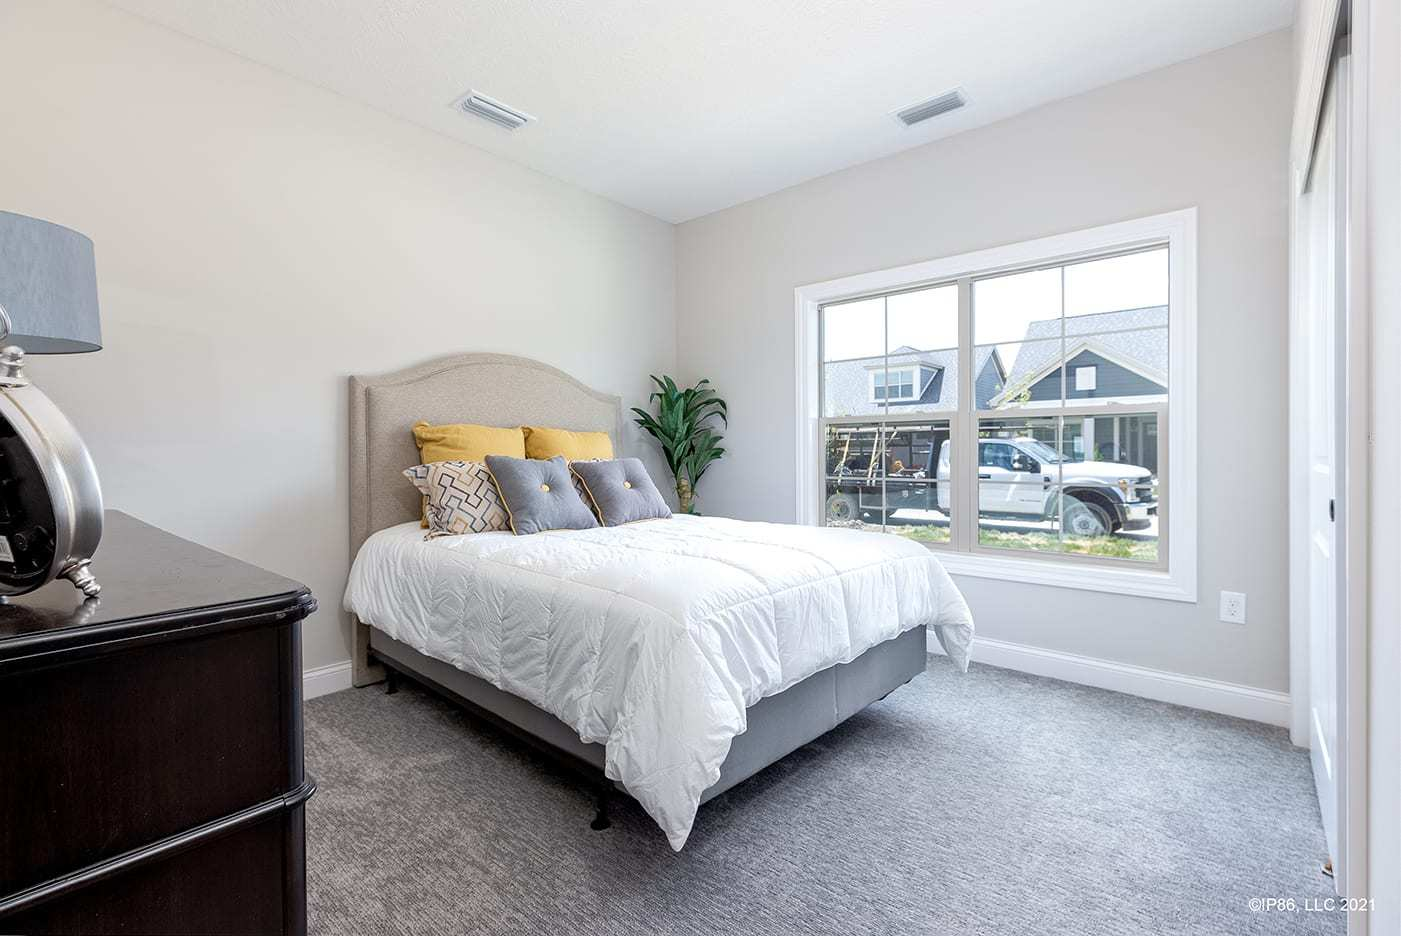 Bedroom featured in the Capri IV - Charlotte** By Epcon Communities in Charlotte, NC